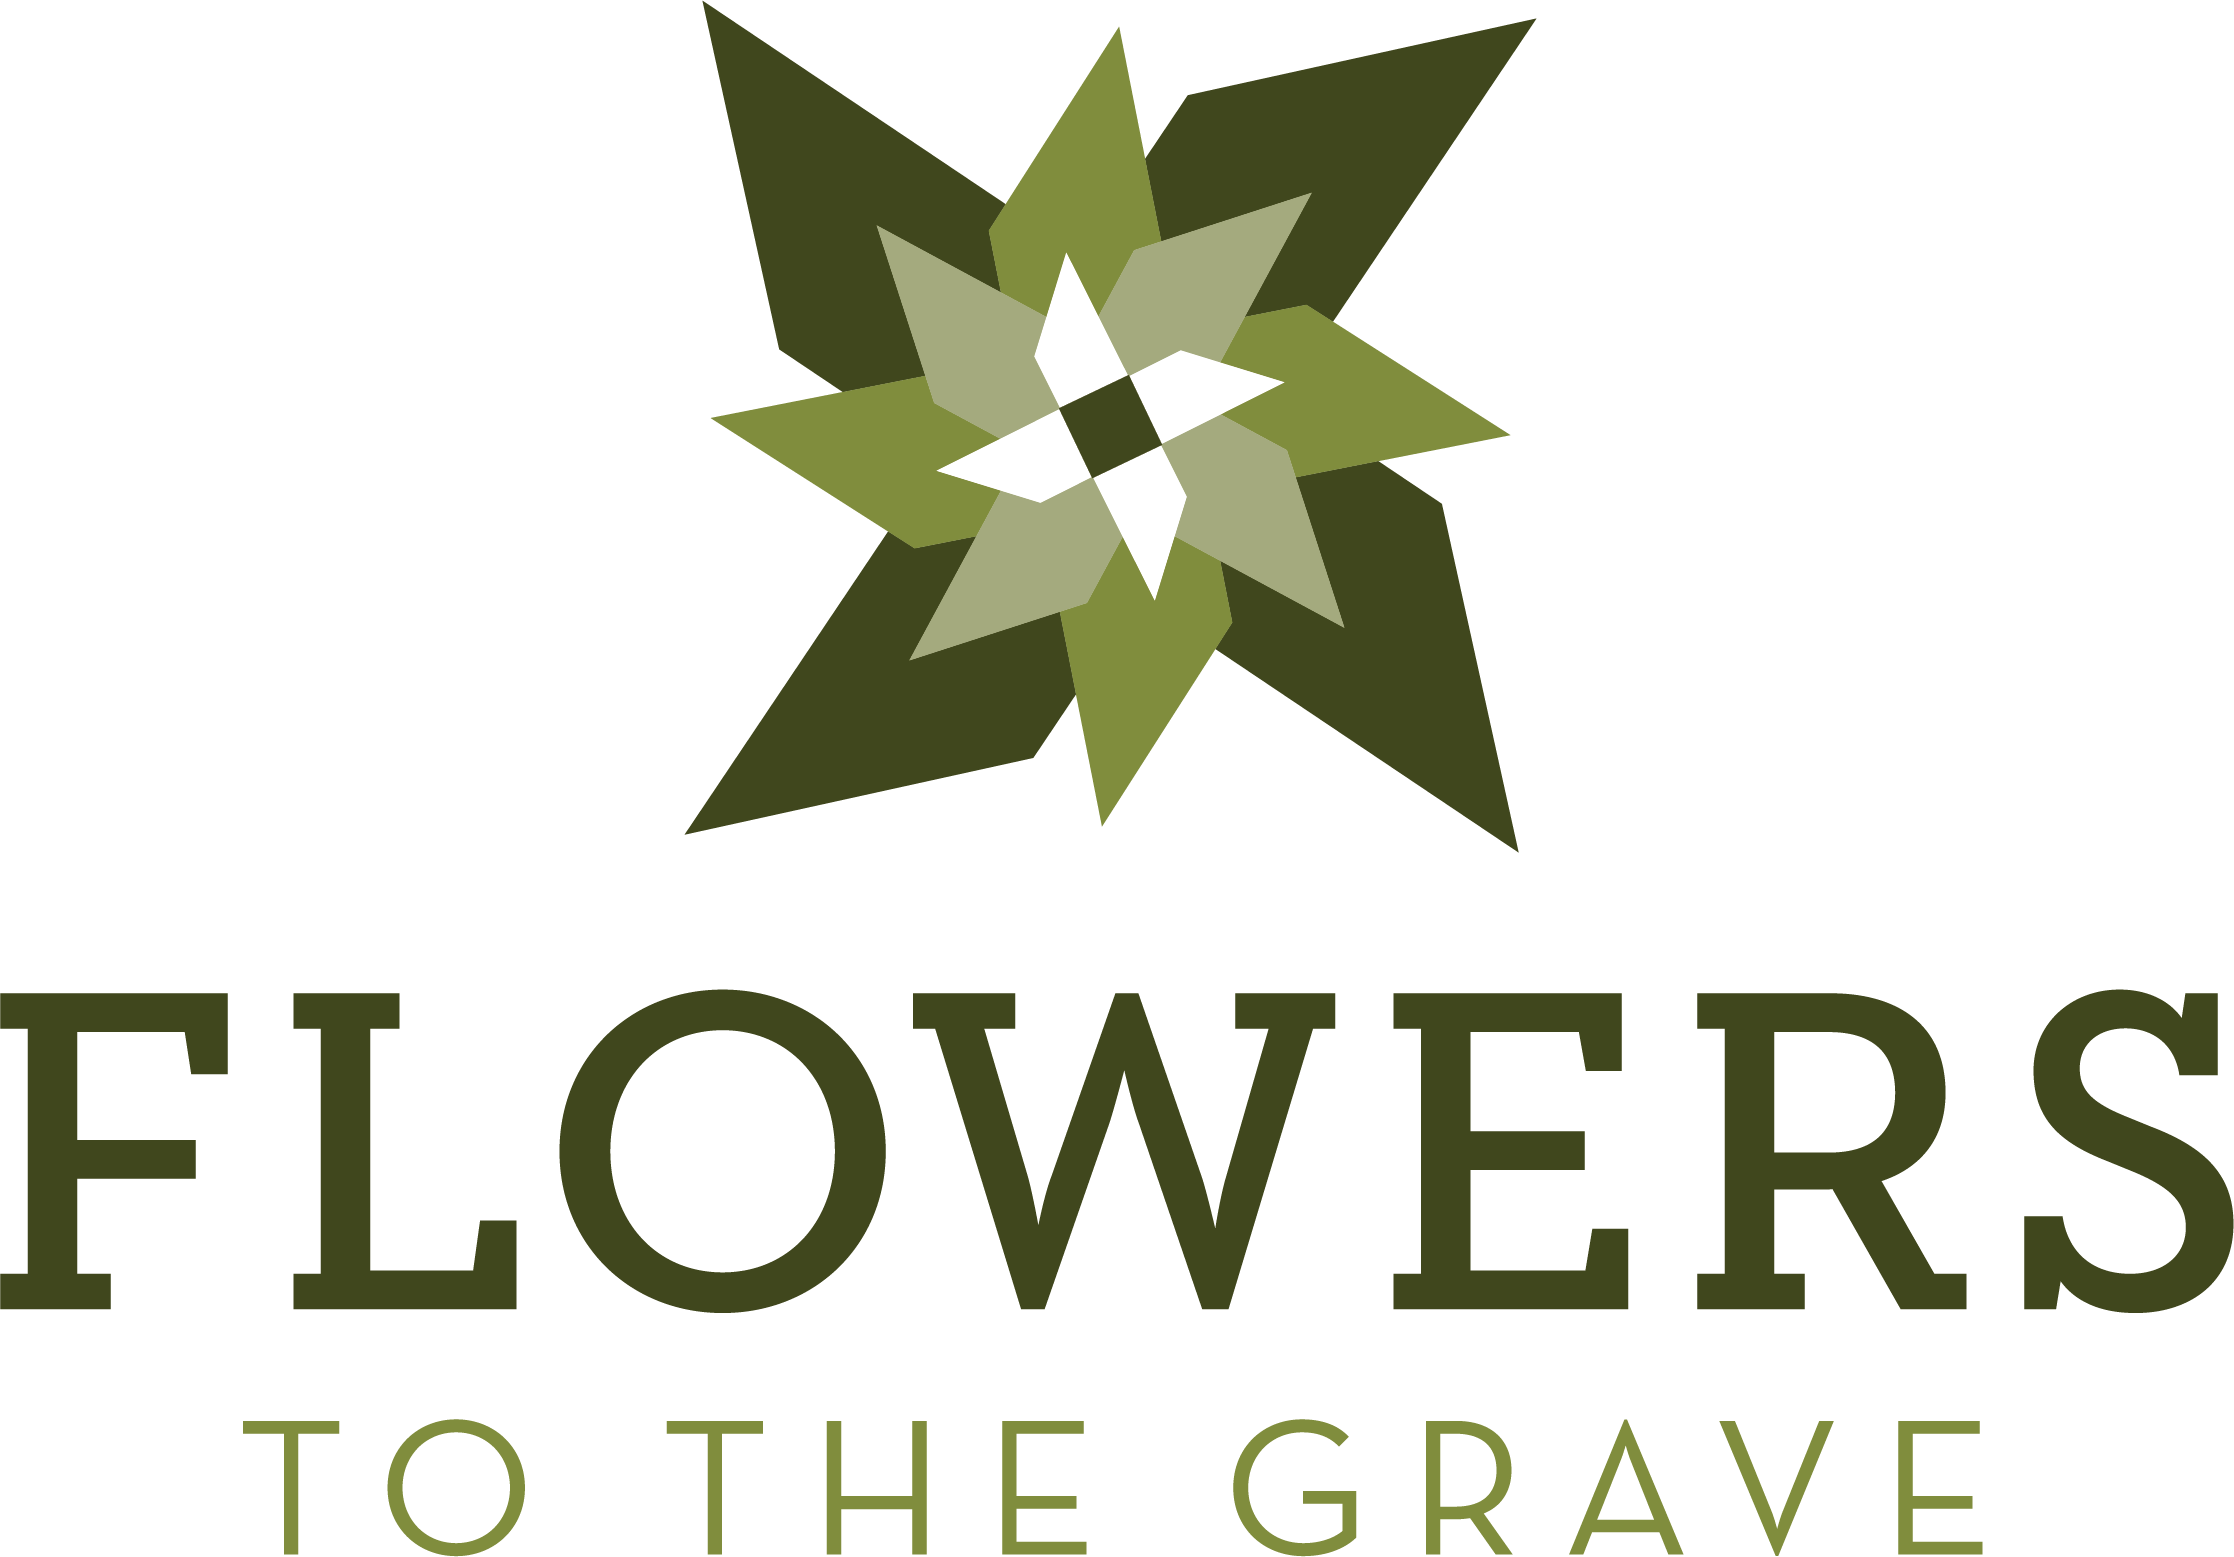 Flowers To The Grave Logo